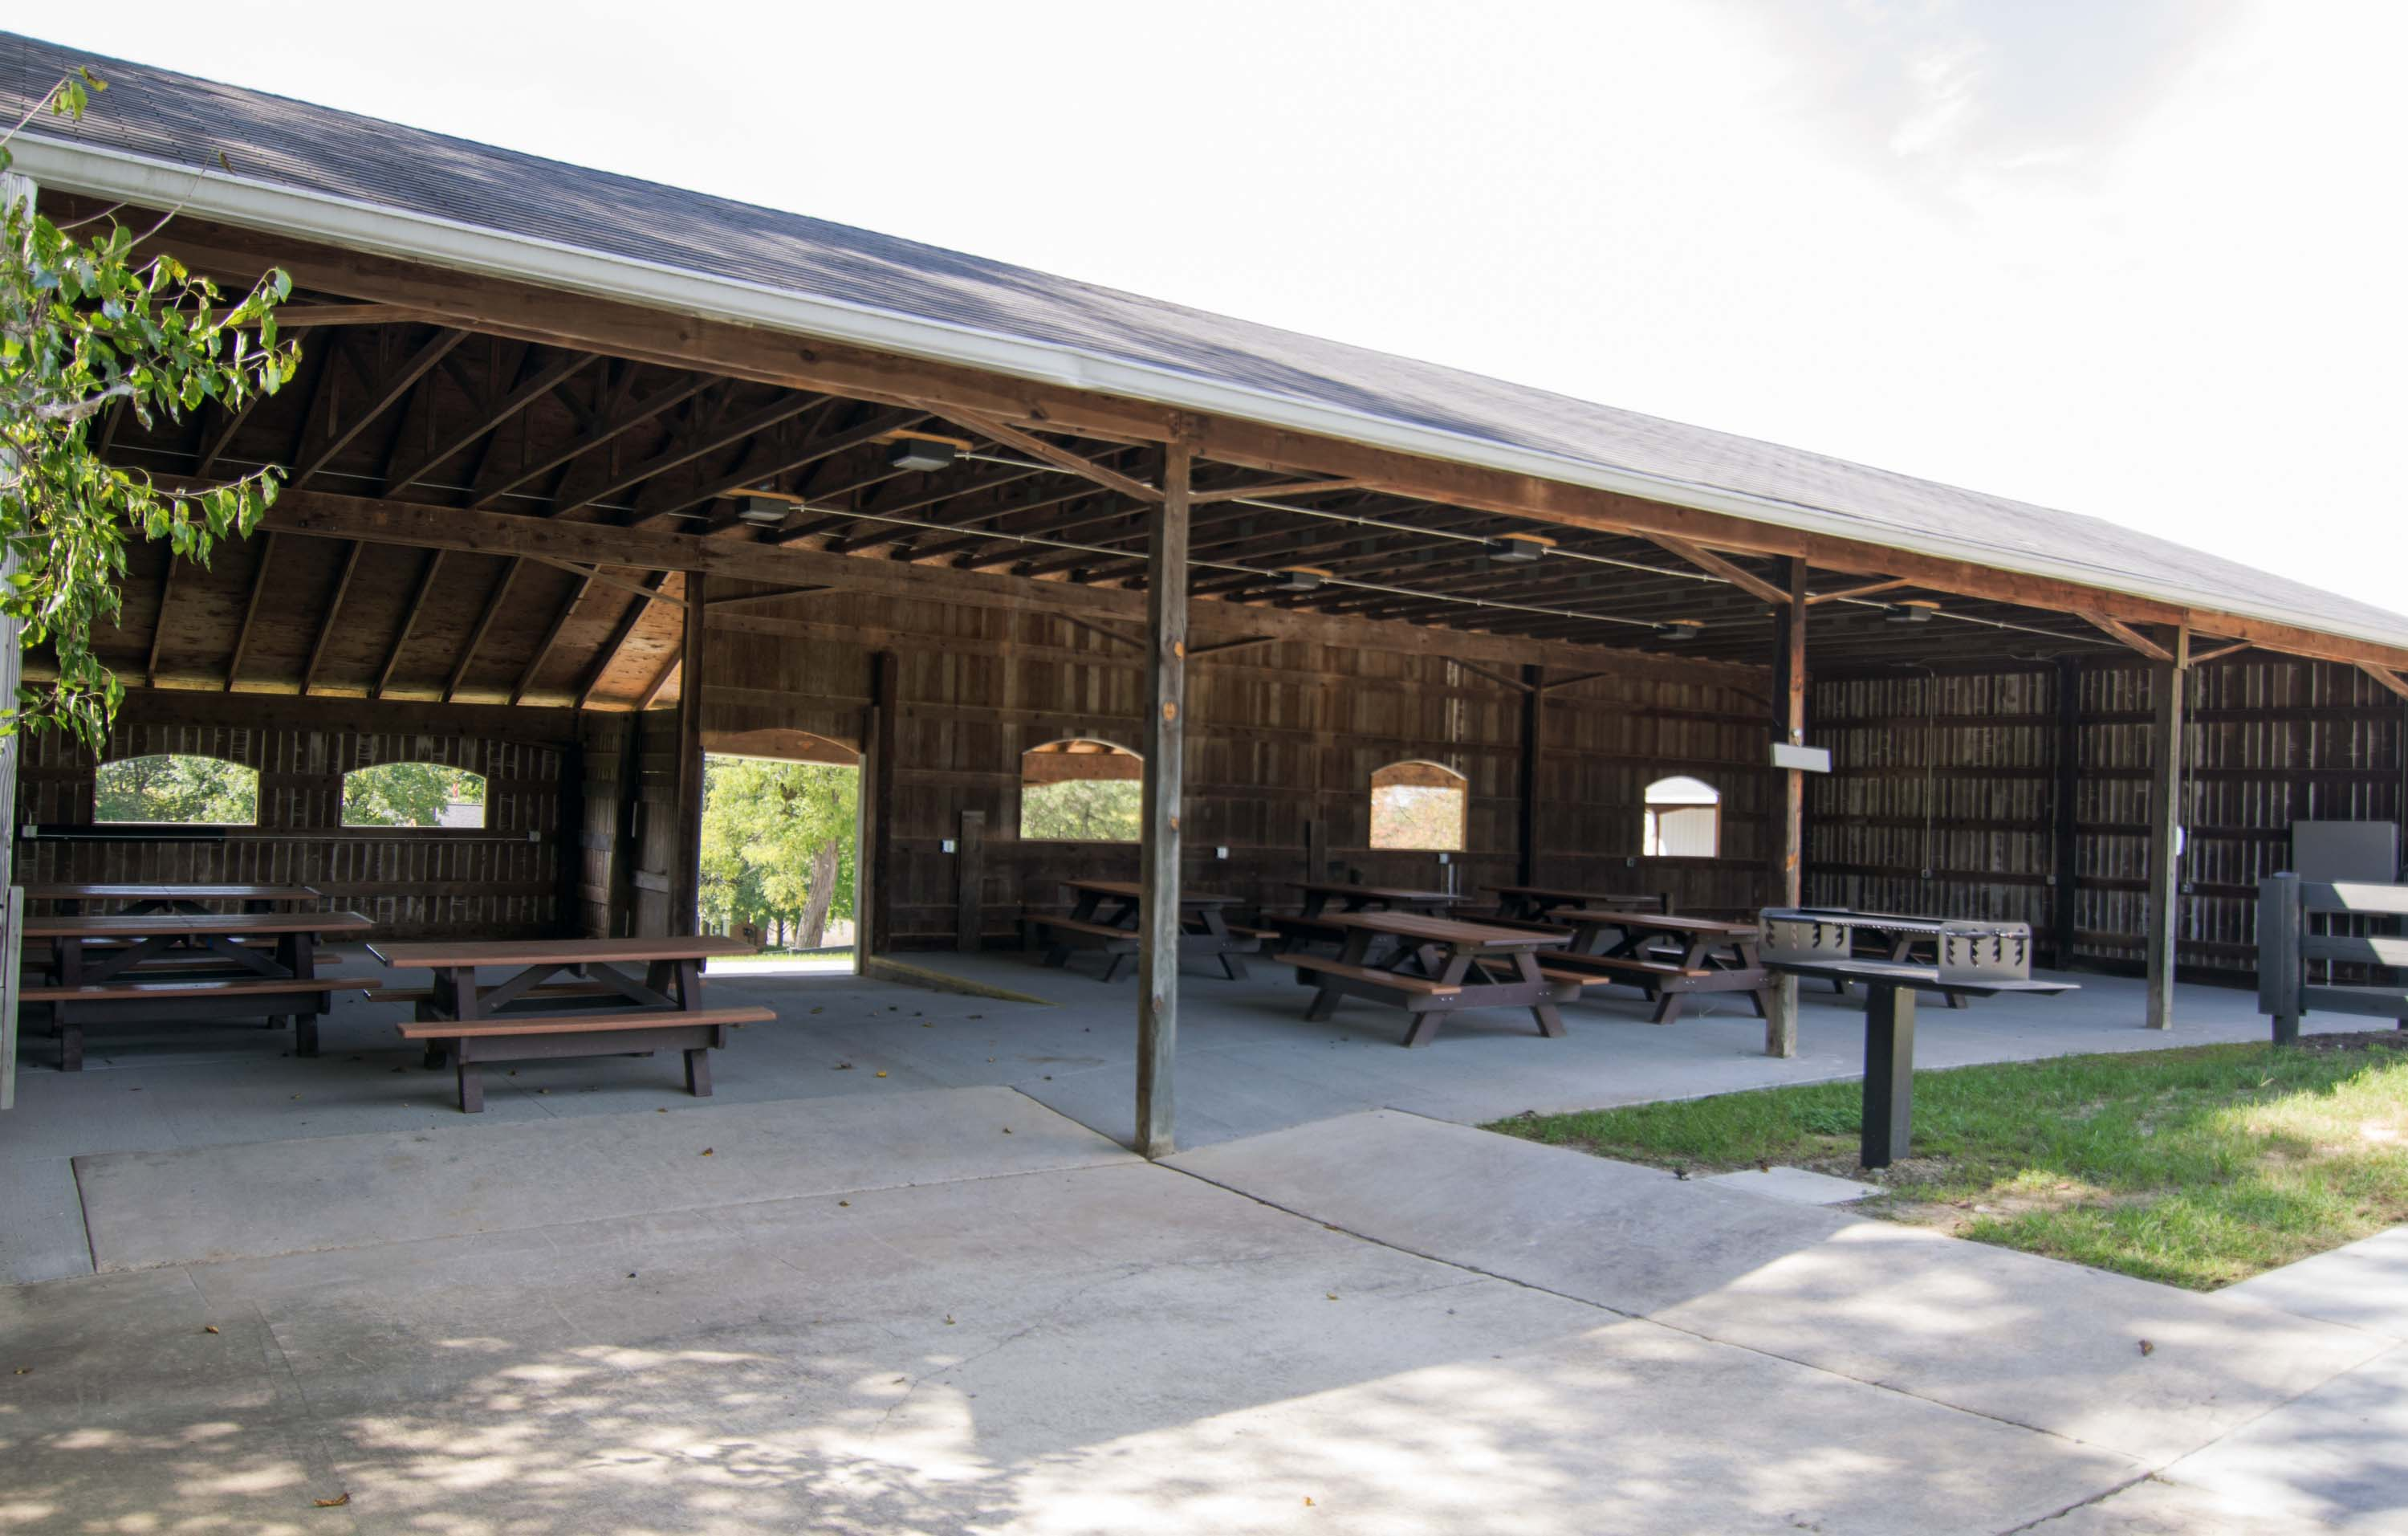 Timberman Ridge Picnic Shelter